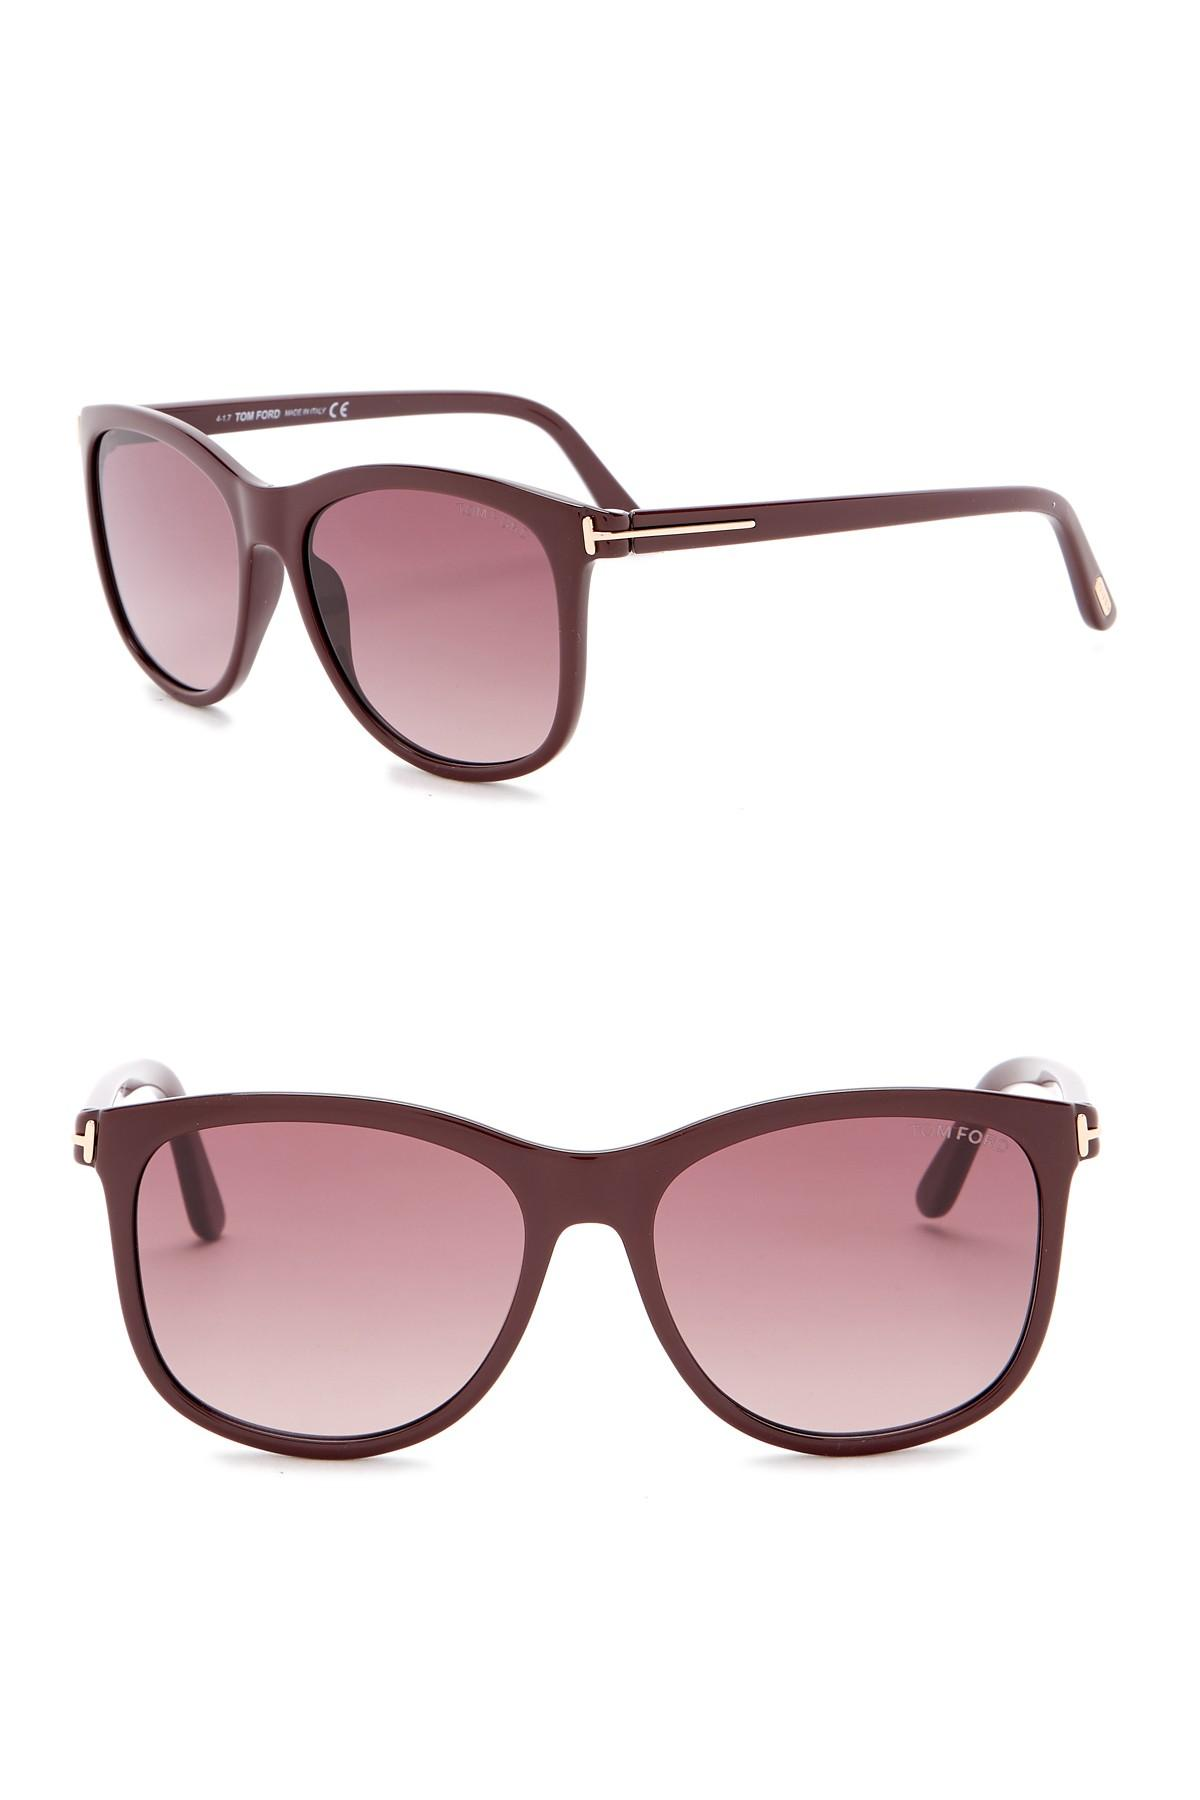 6263dfe472c Tom Ford. Women s Fiona 56mm Square Sunglasses.  456  215 From Nordstrom  Rack